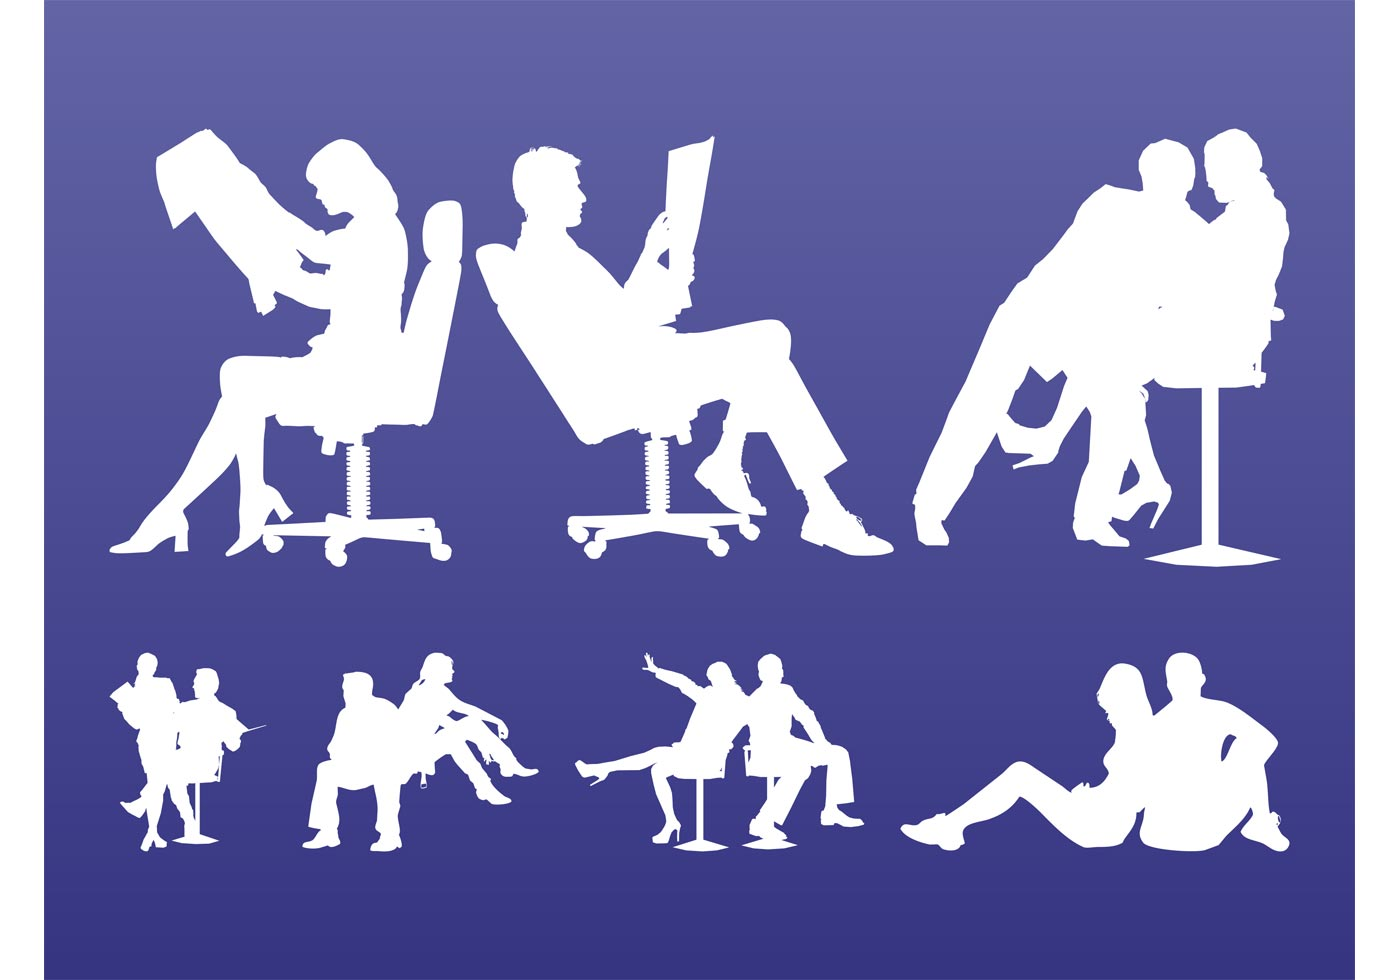 Sitting People Silhouettes Download Free Vector Art